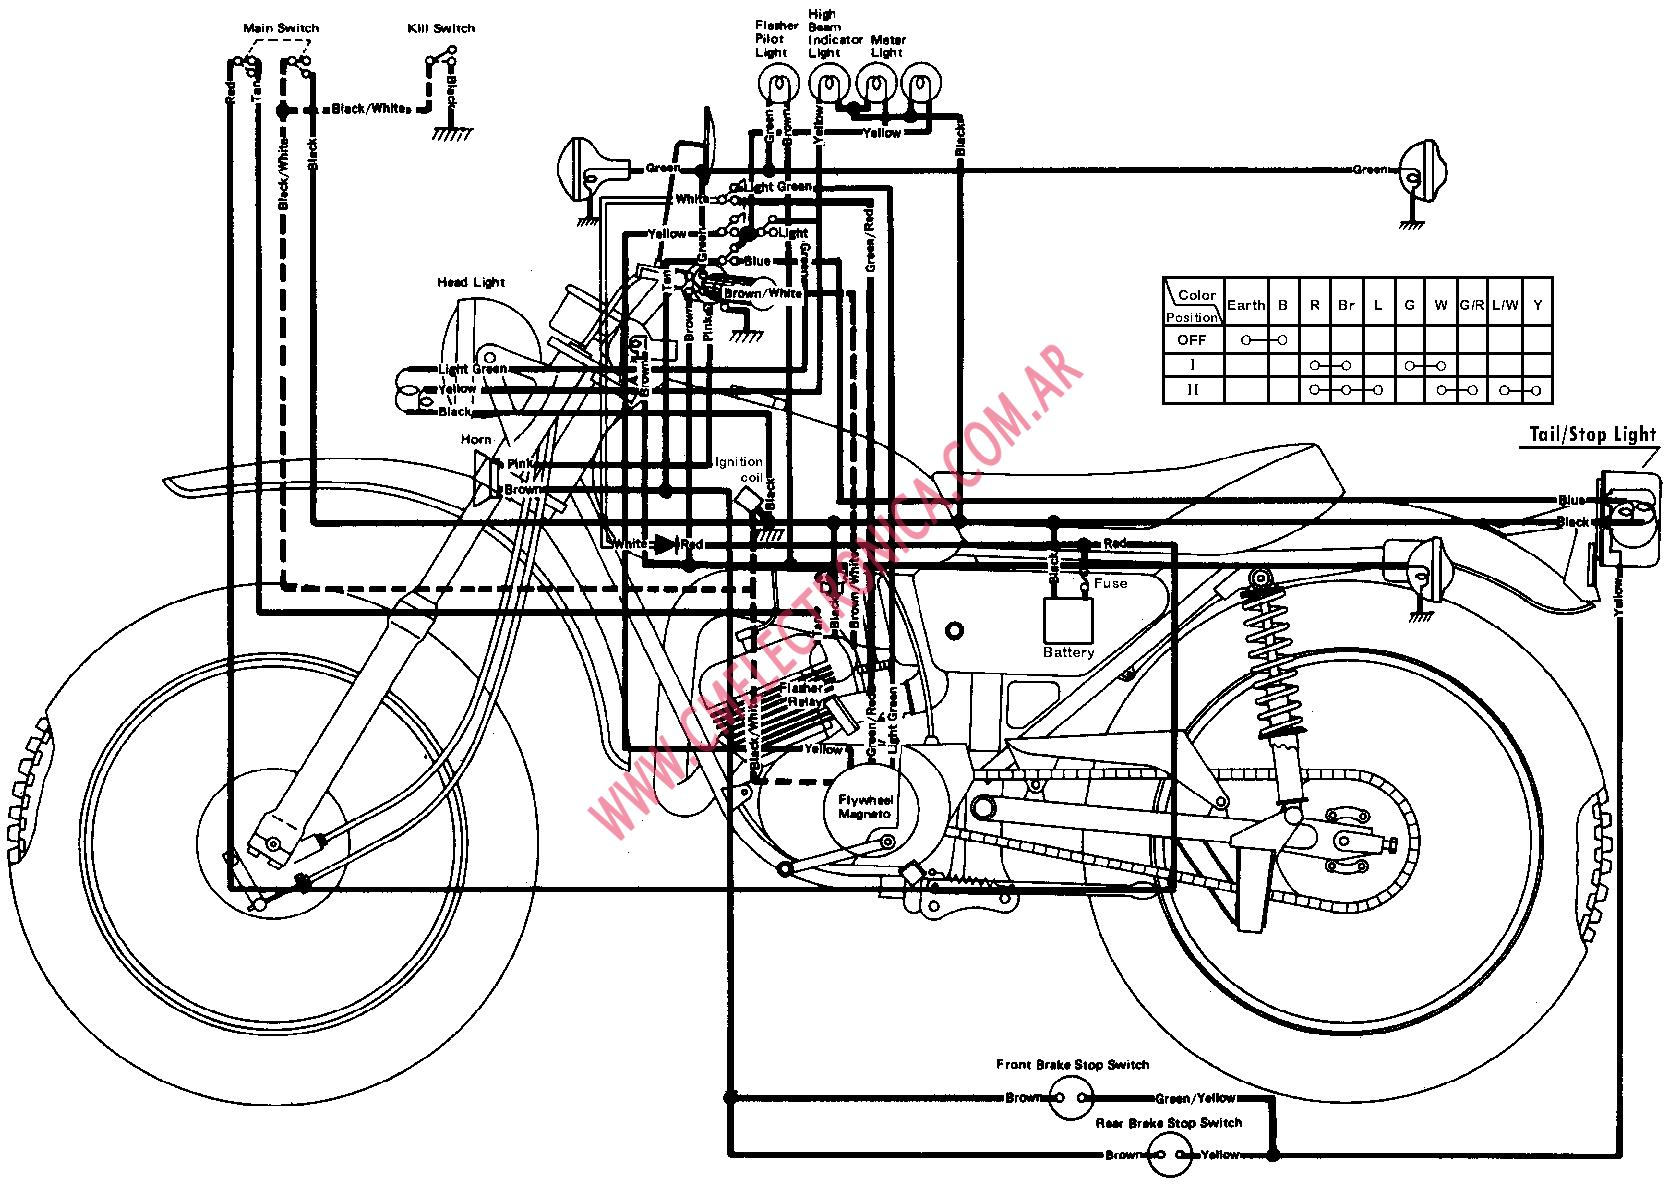 yamaha dt 250 wiring diagram   28 wiring diagram images